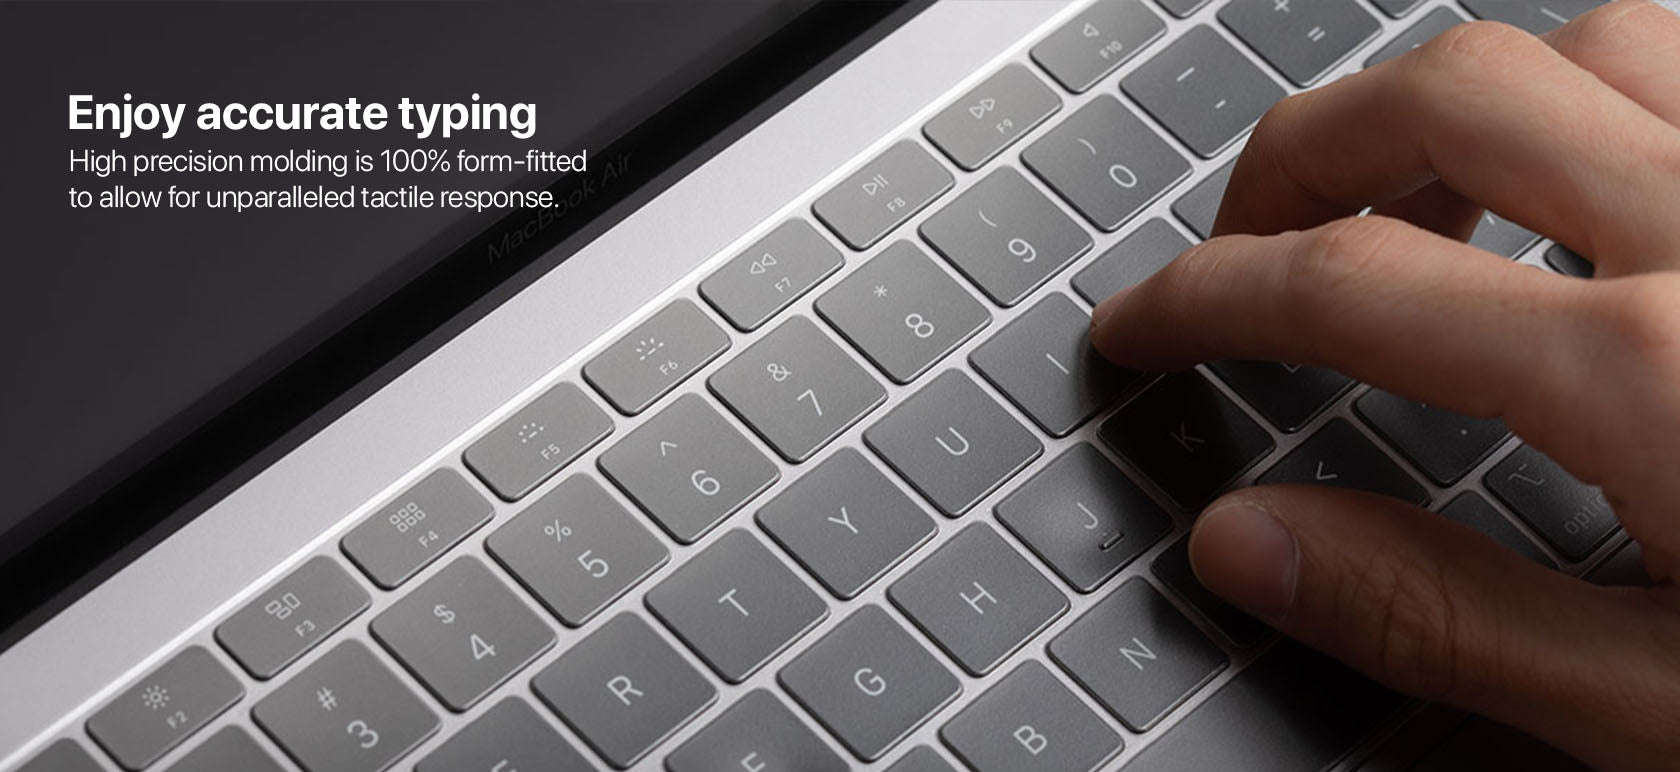 Enjoy accurate typing High precision molding is 100% form-fitted to allow for unparalleled tactile response.